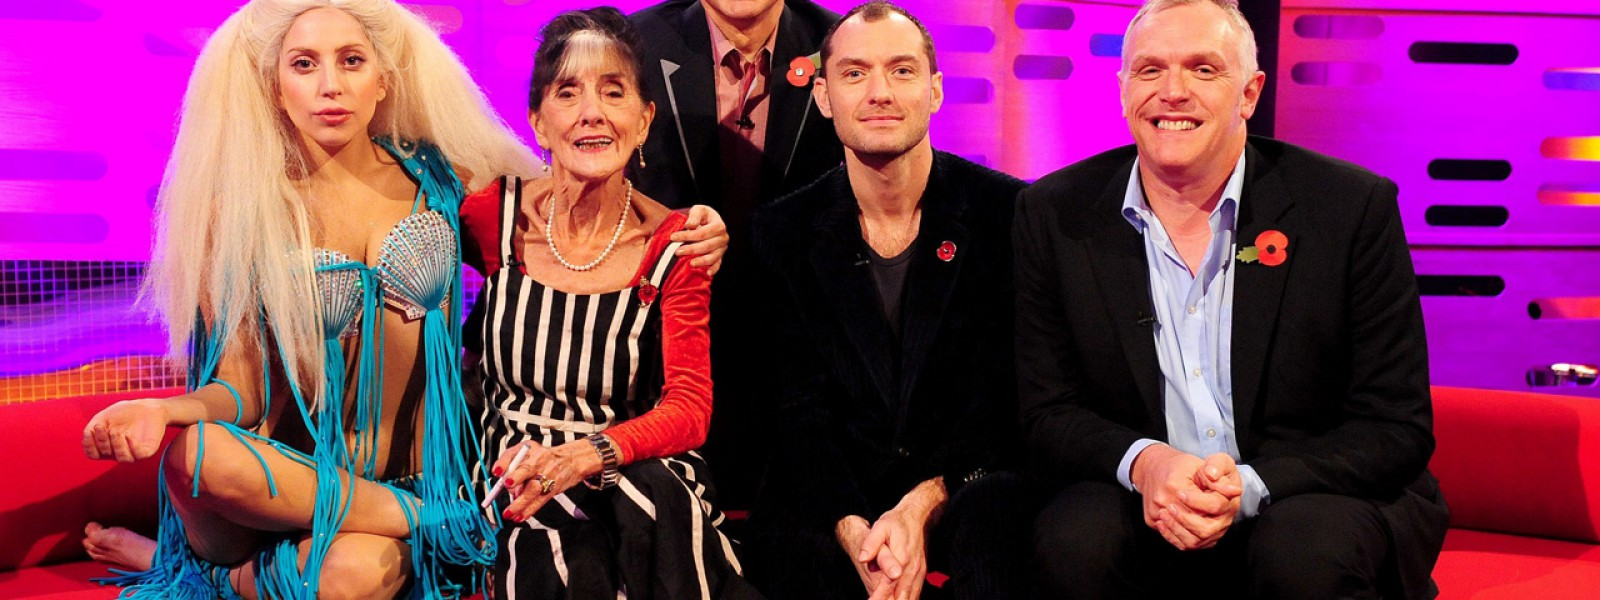 the-graham-norton-show-s14-ep5-01